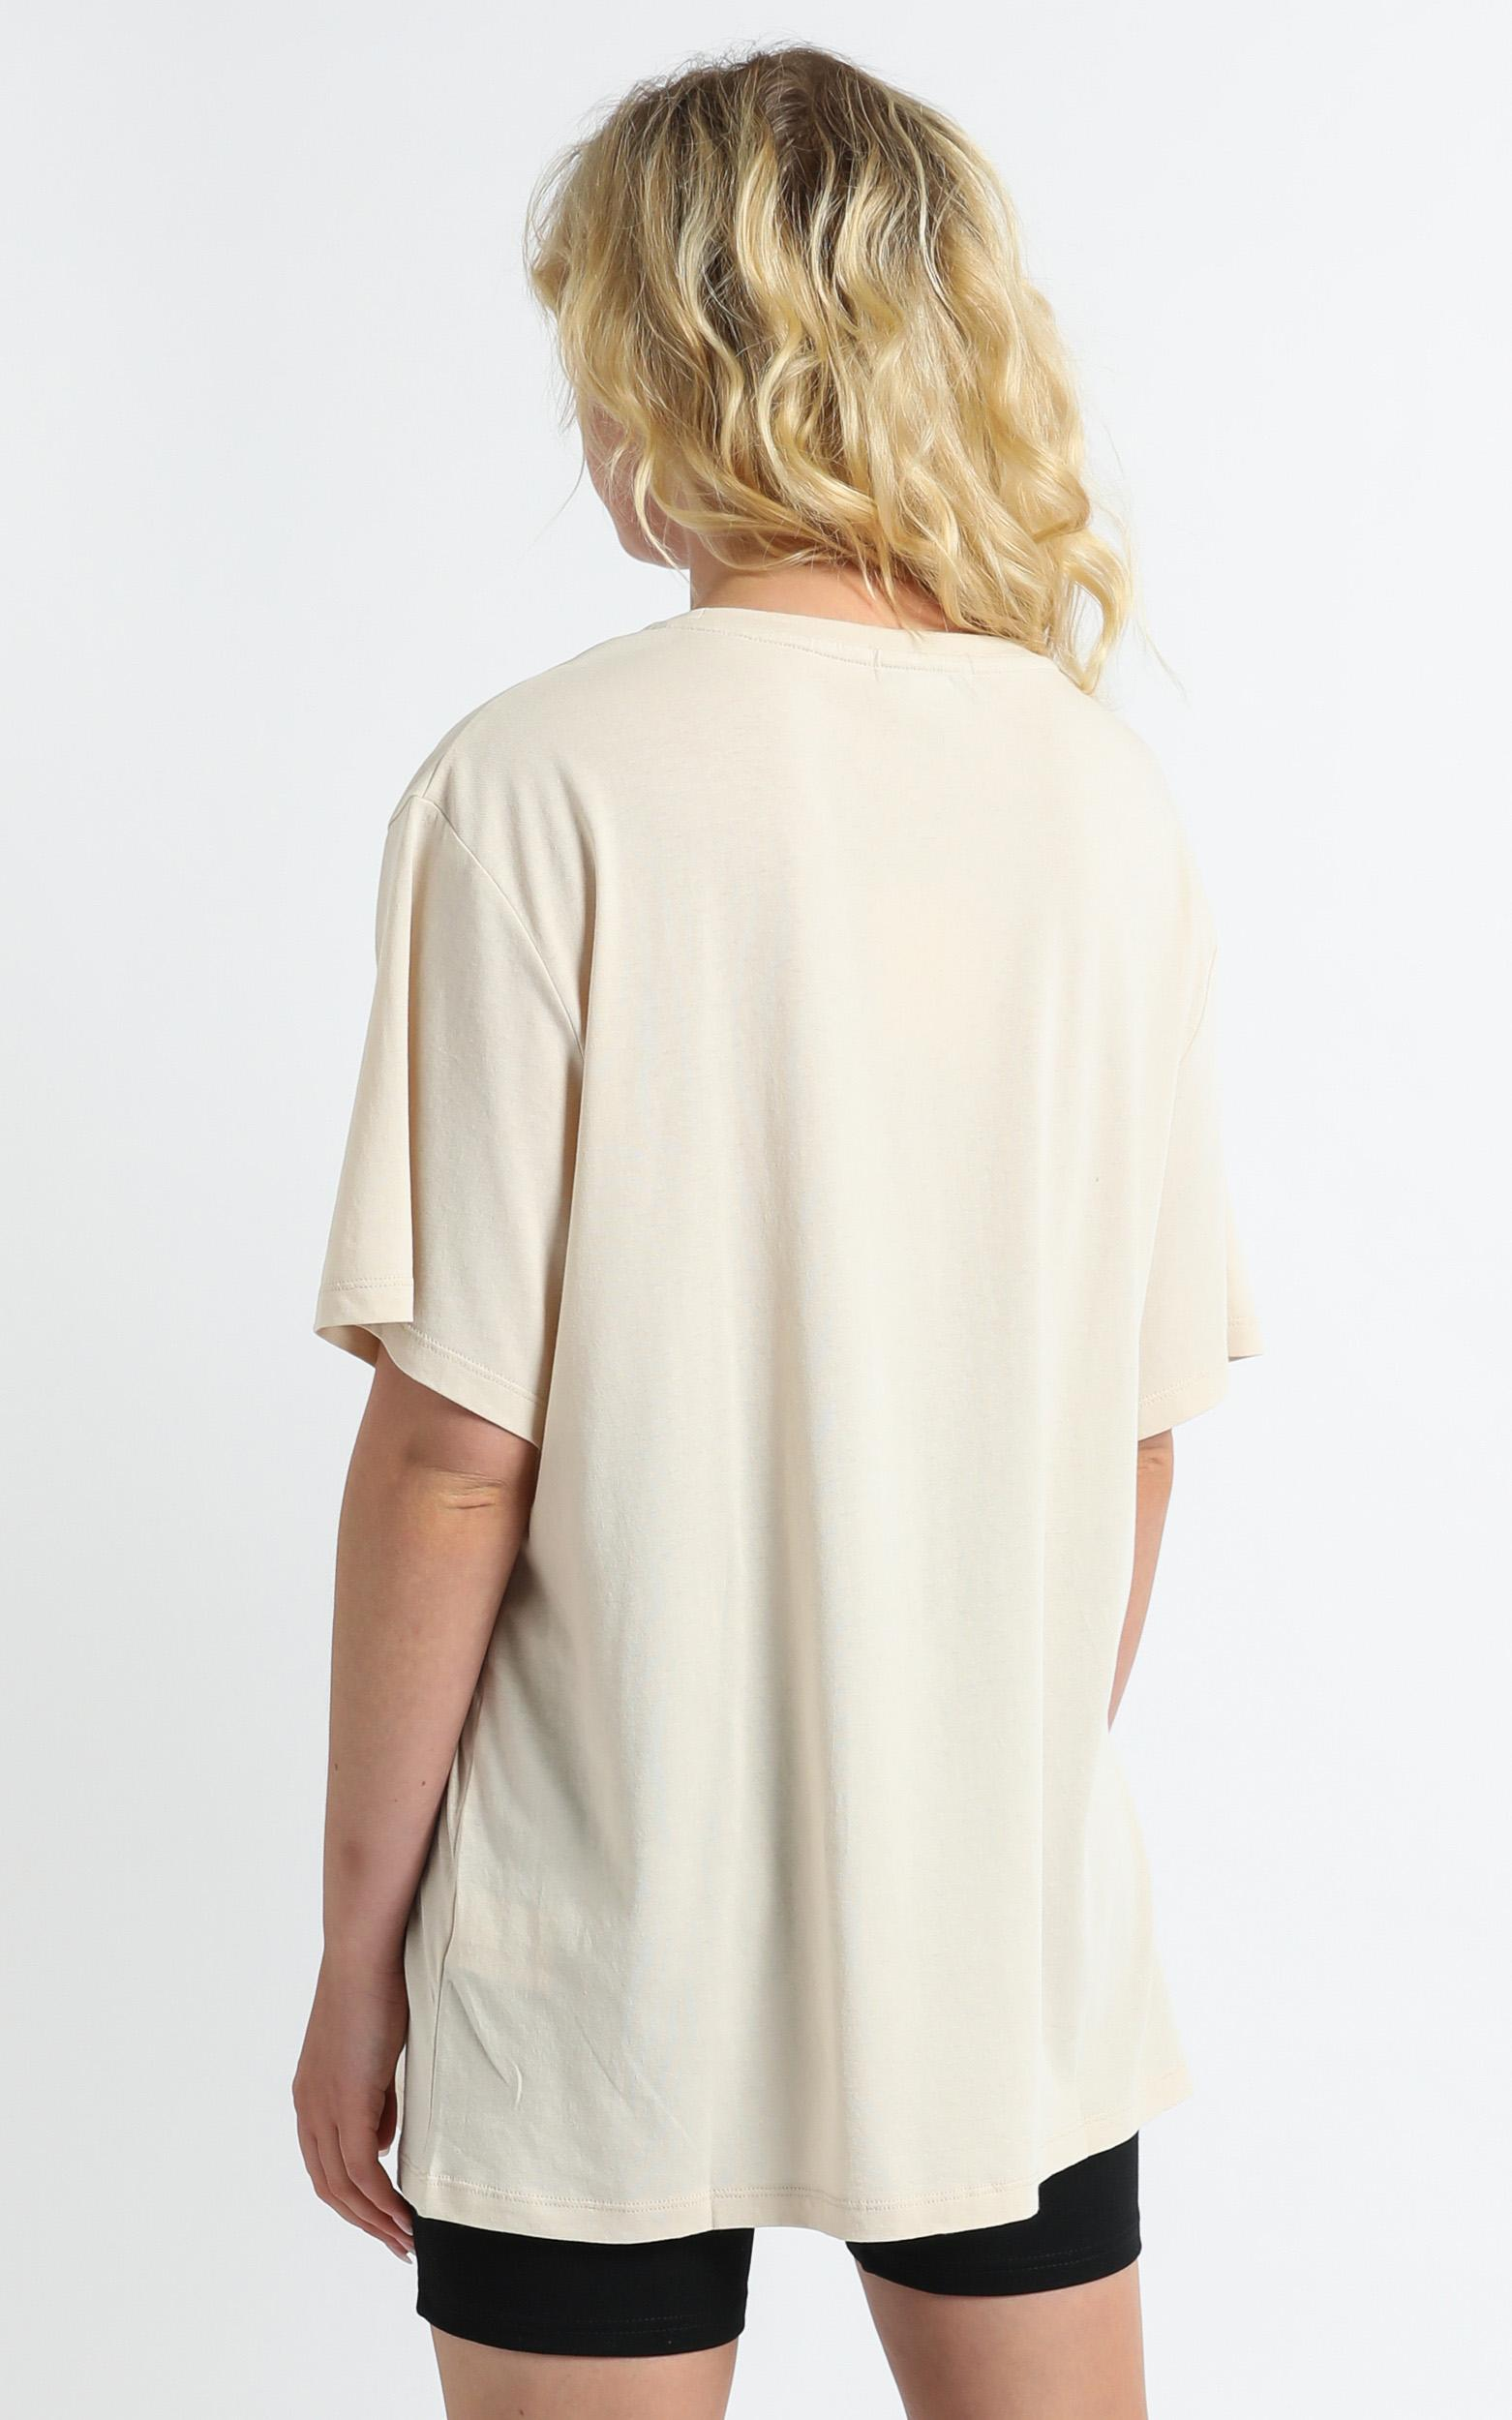 Charlie Holiday - Sweet Thing Oversize Boyfriend Tee in Birch - XS, Cream, hi-res image number null